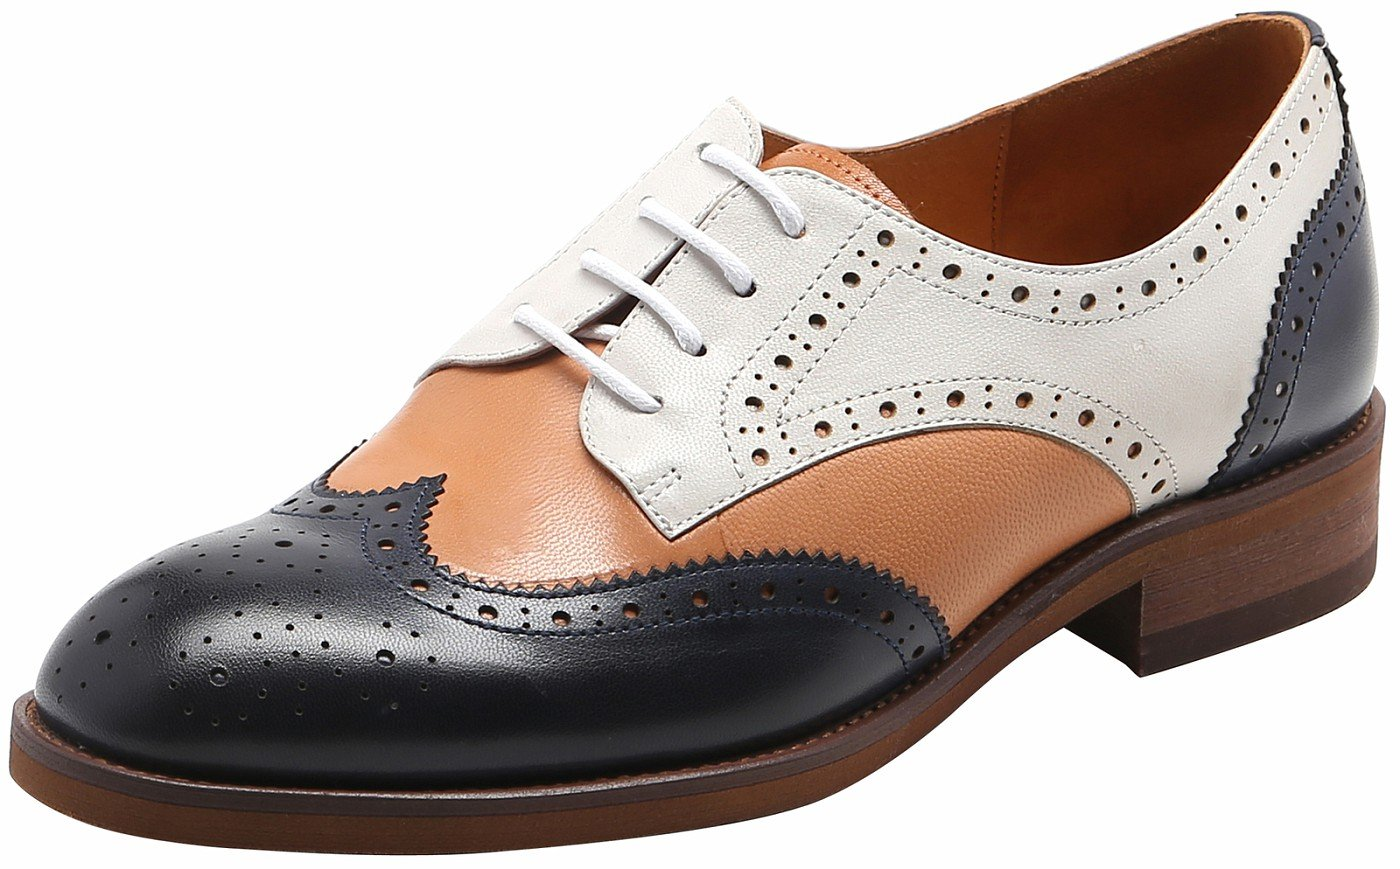 U-lite Muticolor Womens Perforated Lace-up Wingtip Leather Flat Oxfords Vintage Oxford Shoe 7